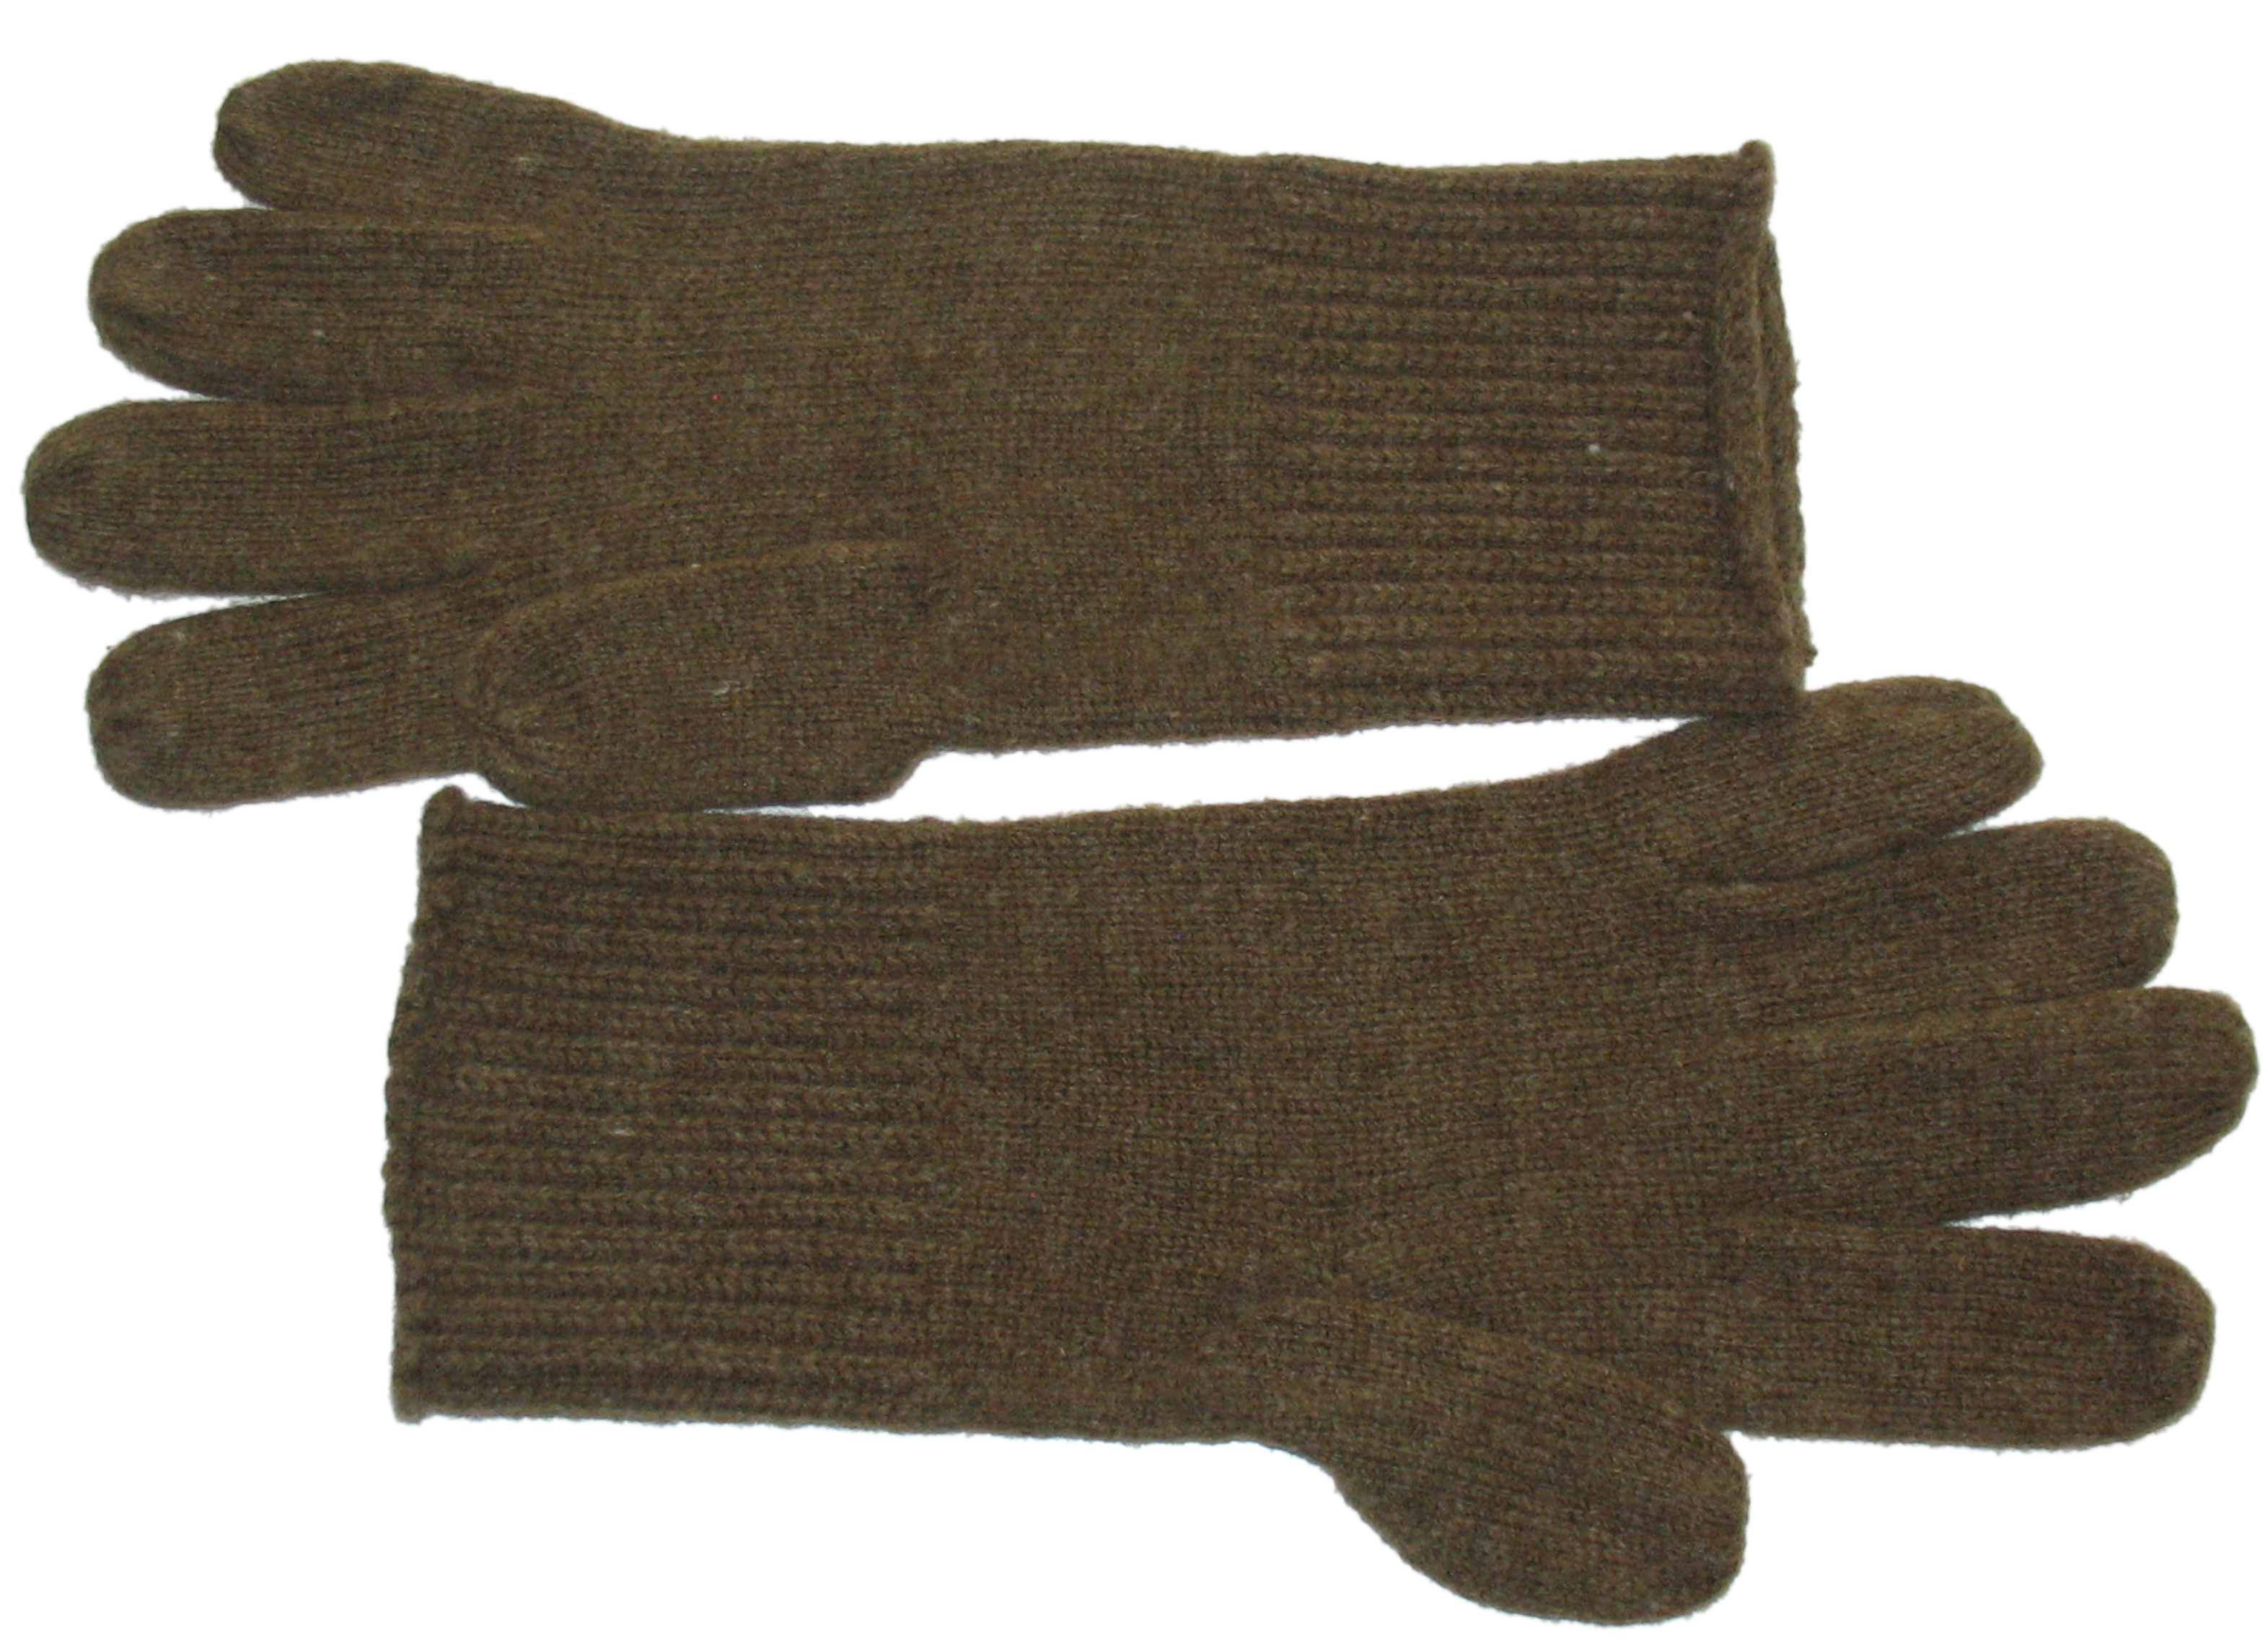 AAF USN flight glove knit inserts